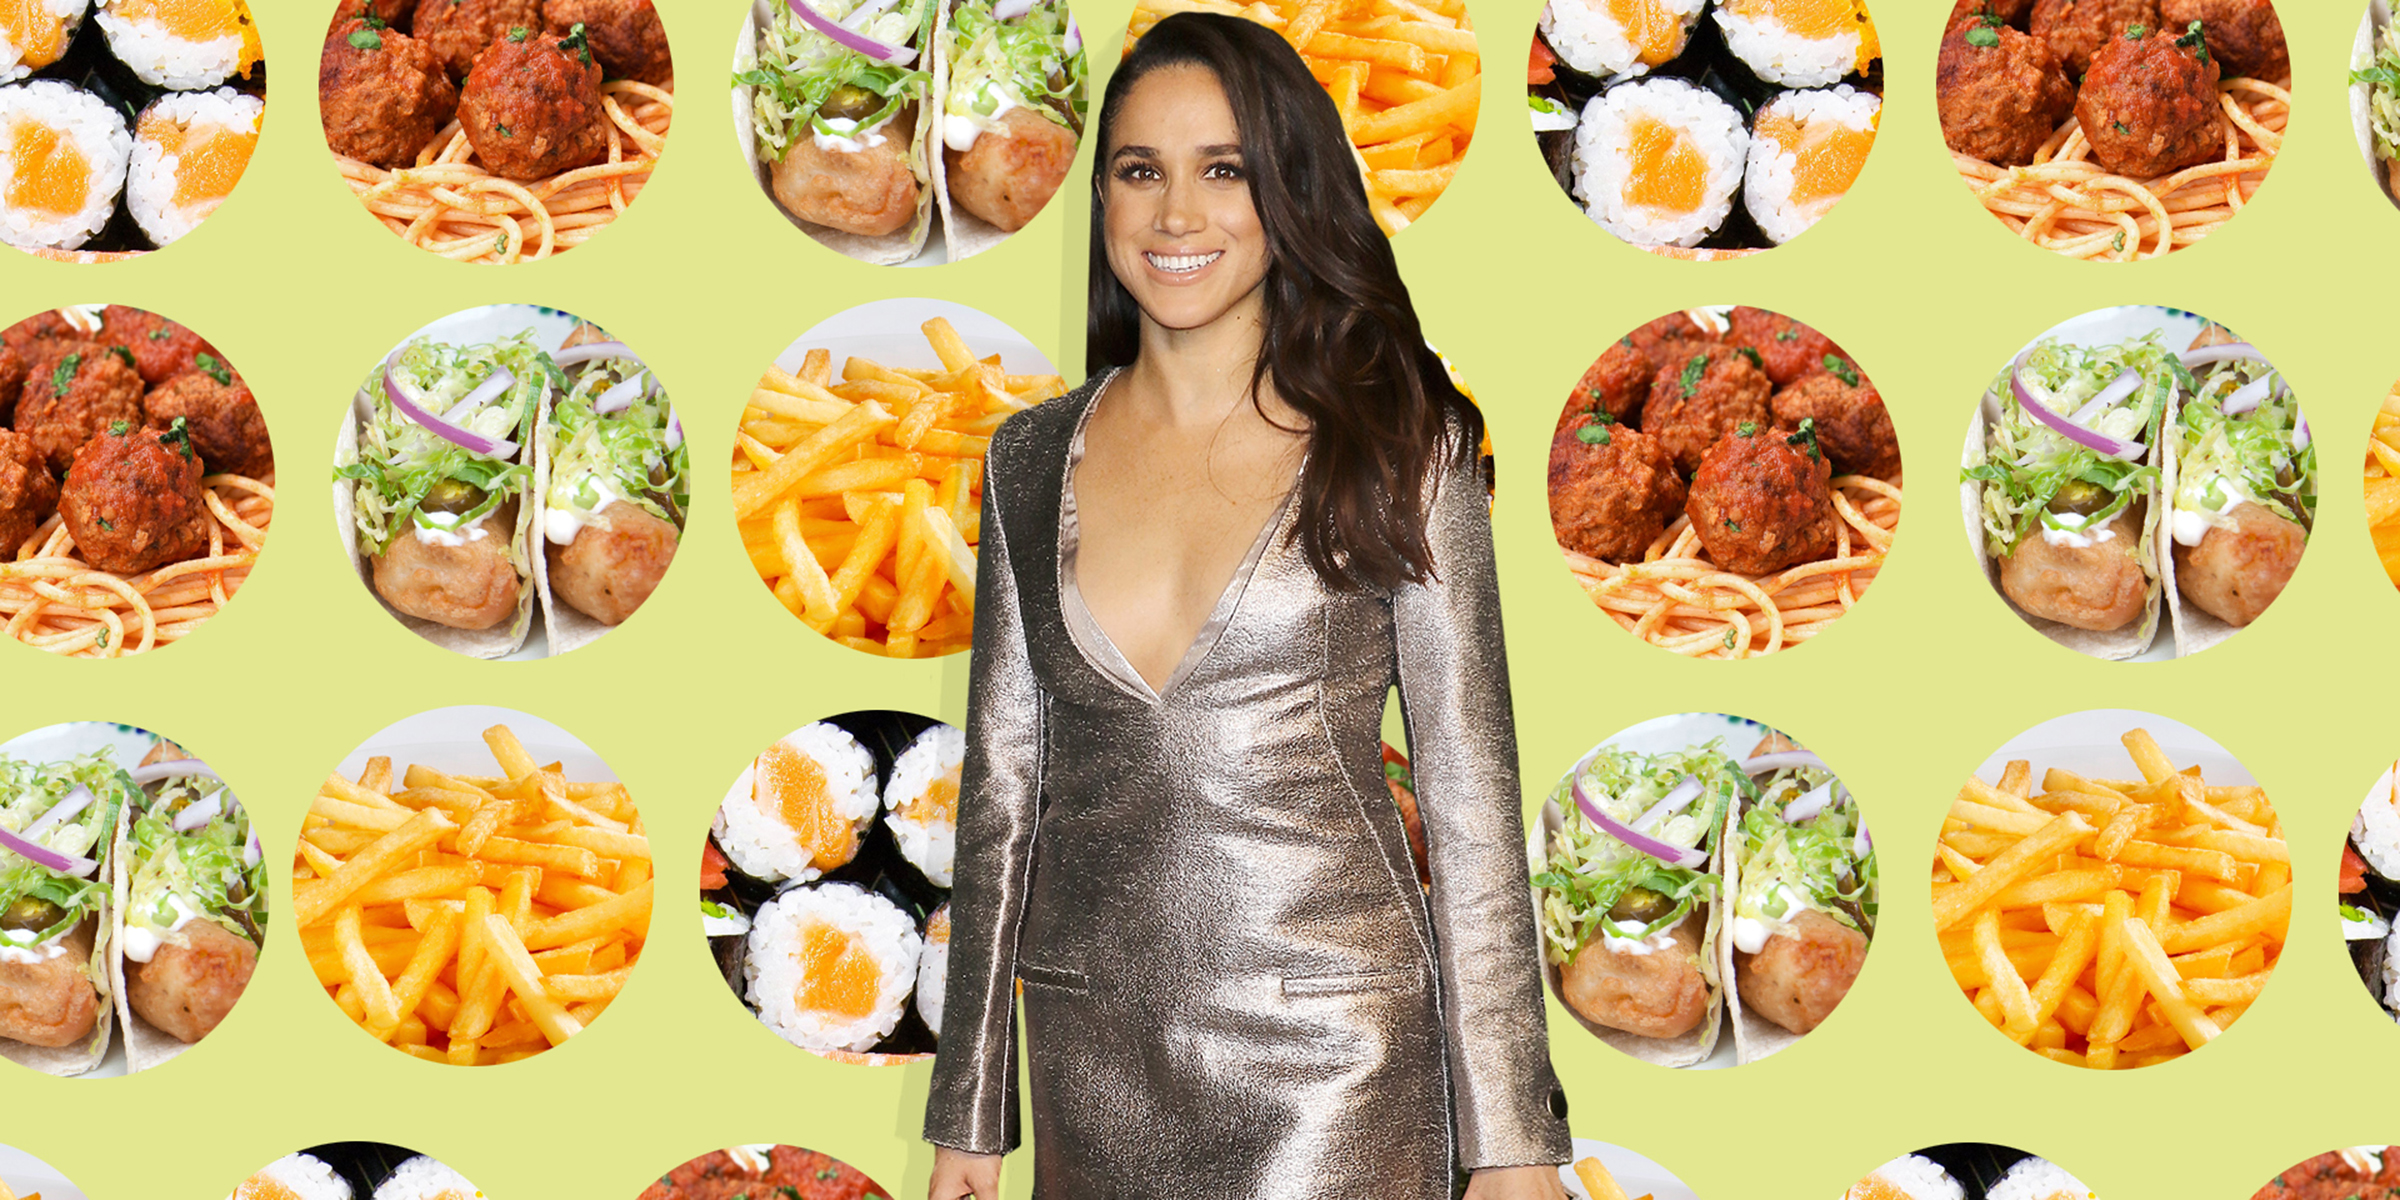 These are Meghan Markle's favorite foods